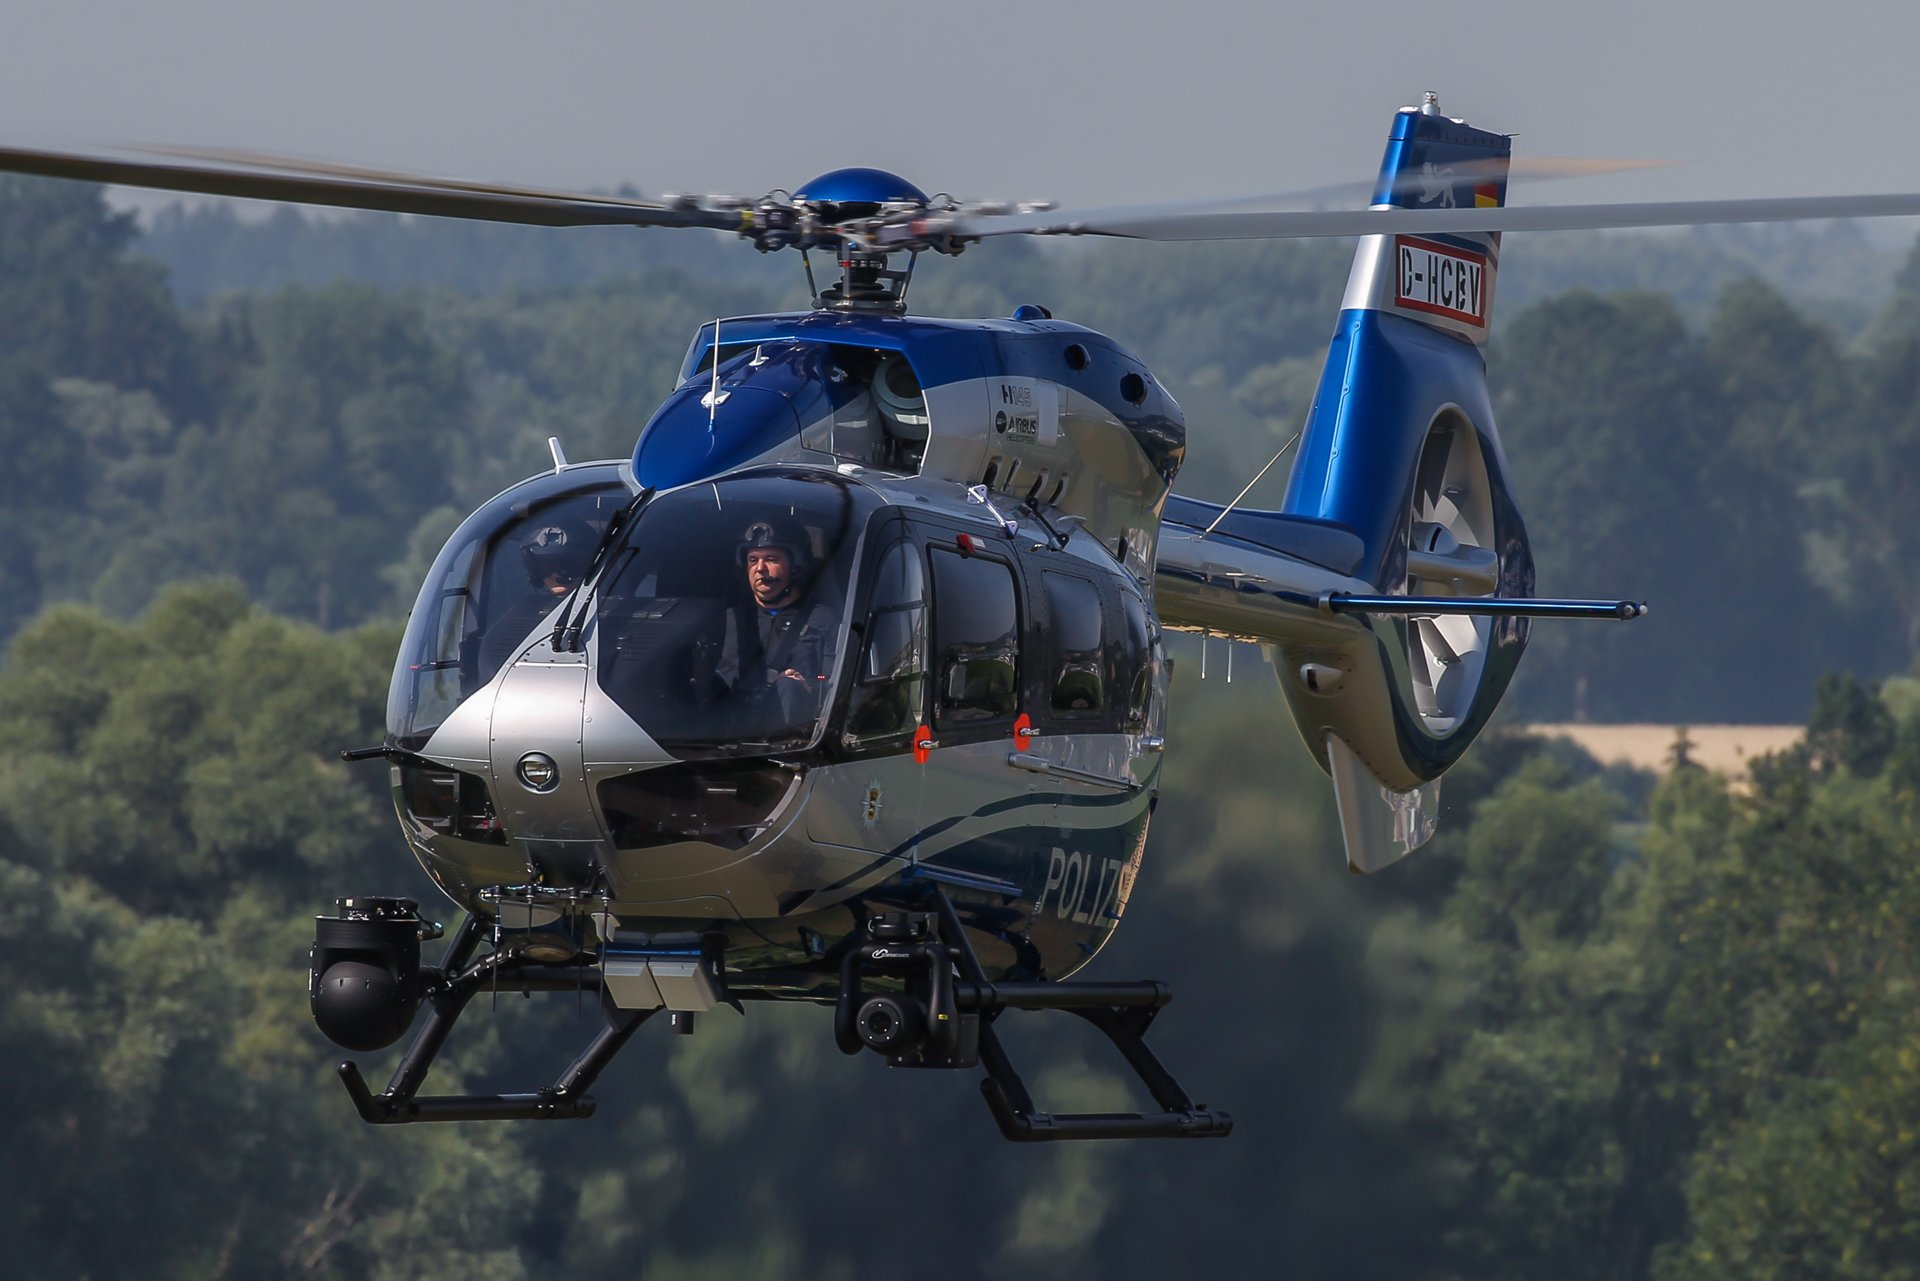 German State Police of Baden-Württemberg receive the world's first H145 in law enforcement configuration